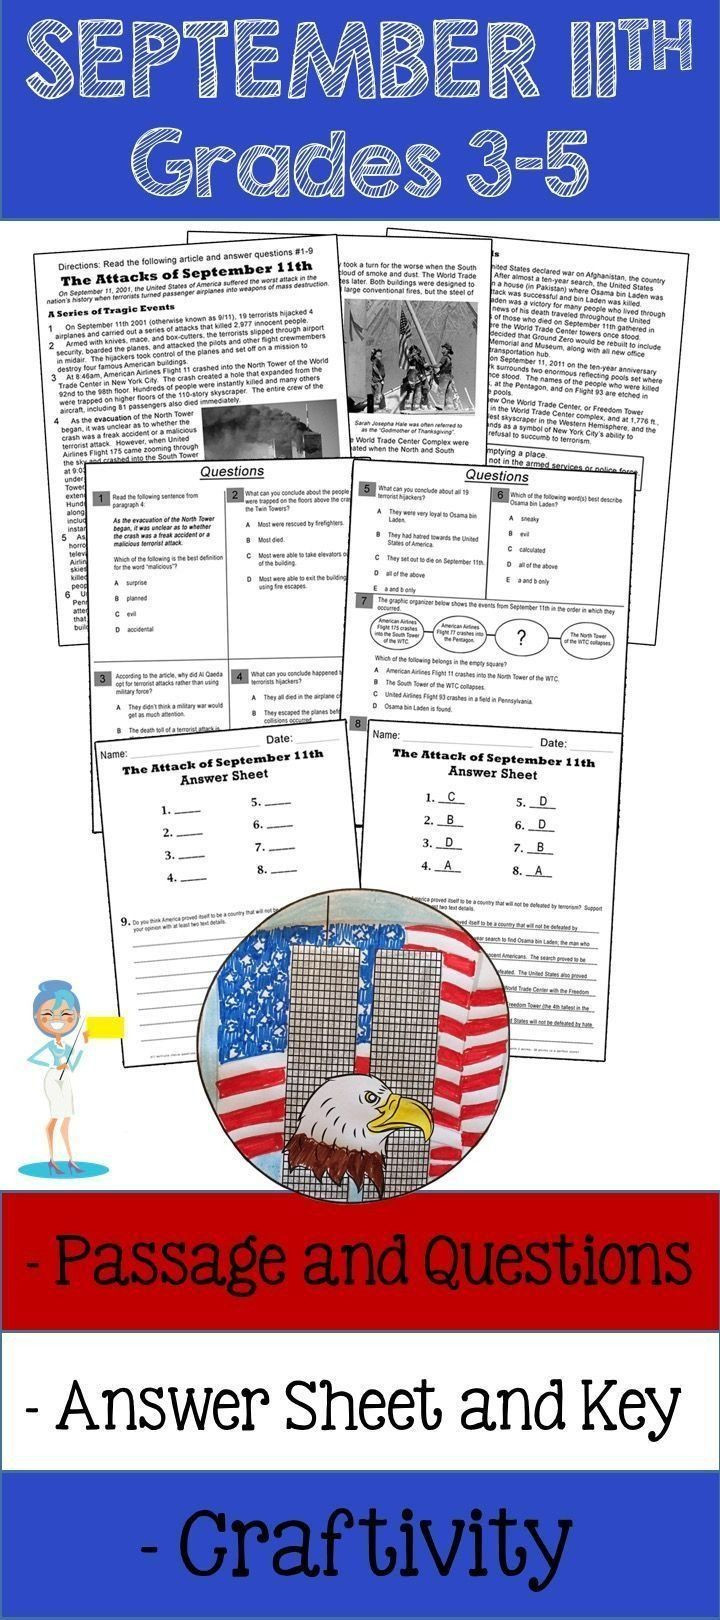 9 11 Reading Comprehension Worksheets 9 11 Reading Prehension Worksheets September 11th Reading